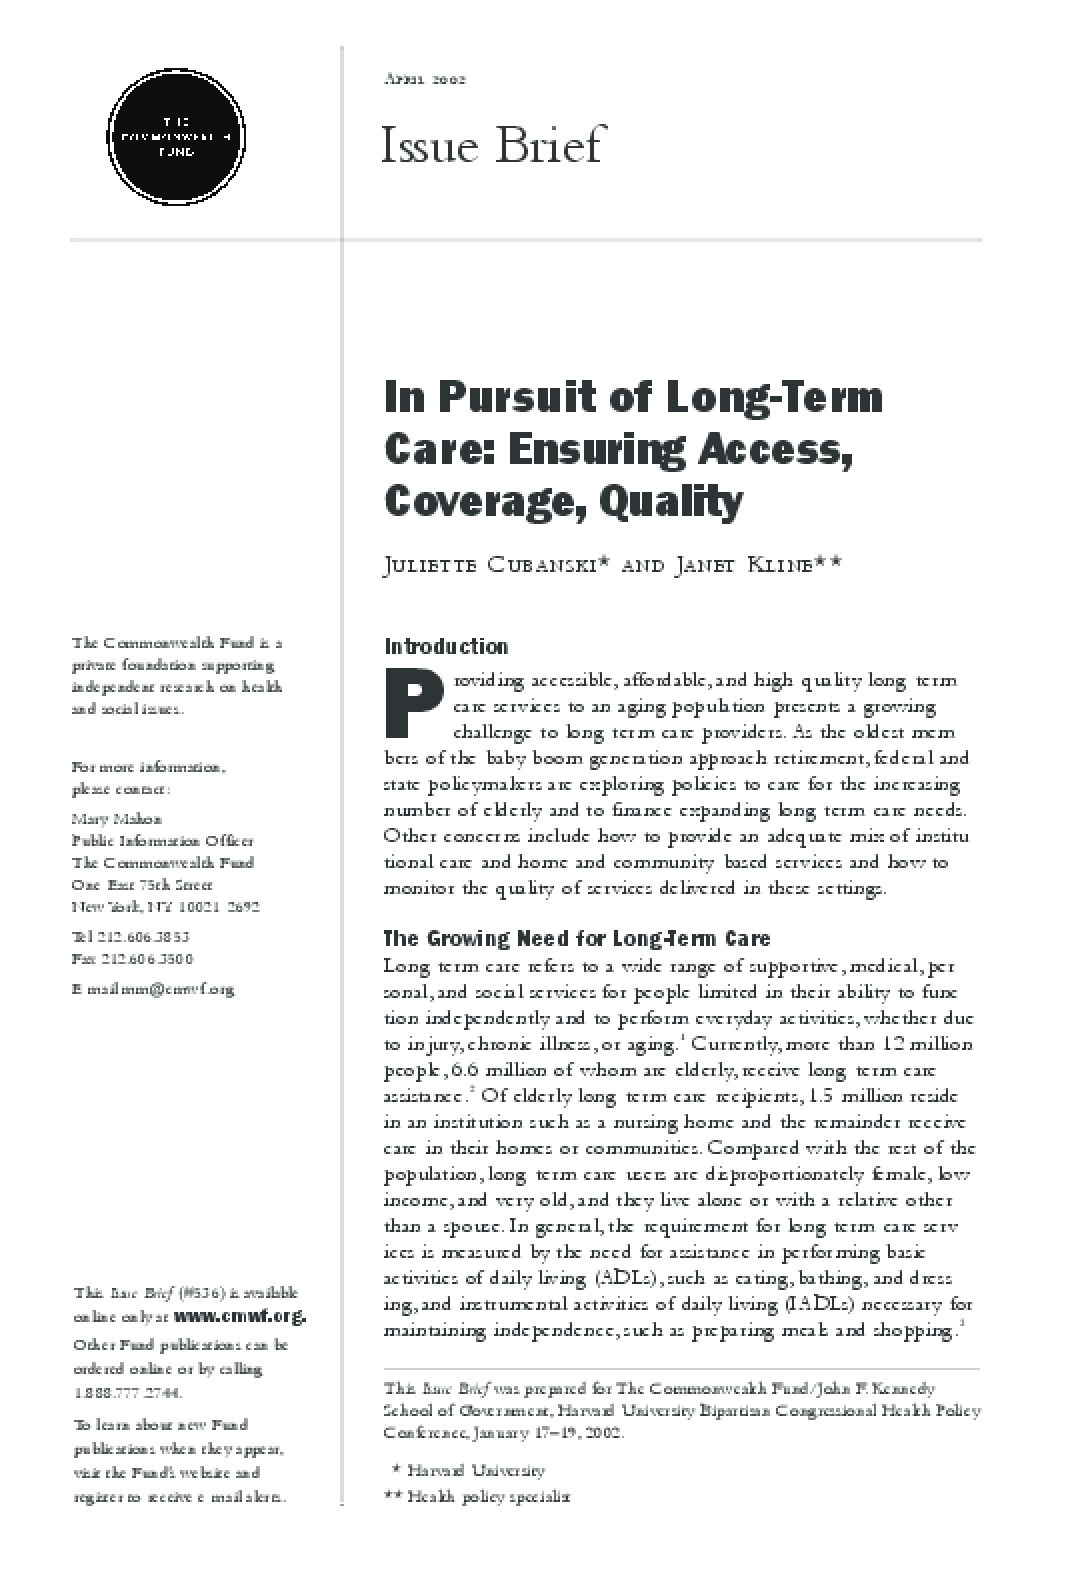 In Pursuit of Long-Term Care: Ensuring Access, Coverage, Quality